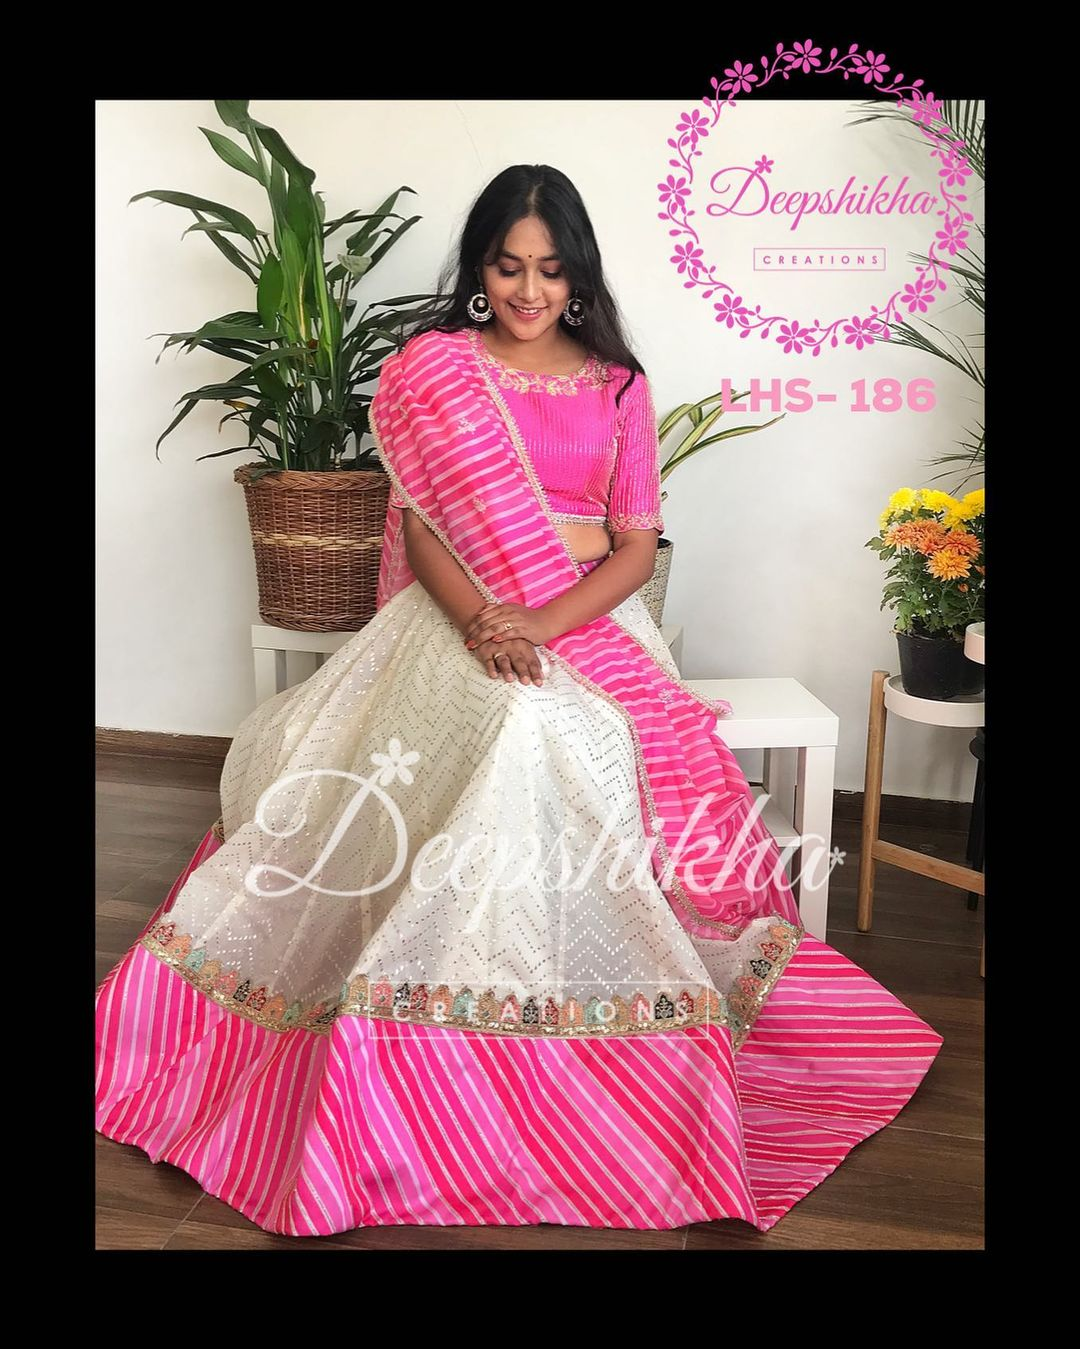 LHS - 186. Beautiful off white and pink color combination halfsaree with leheariya dupatta. 